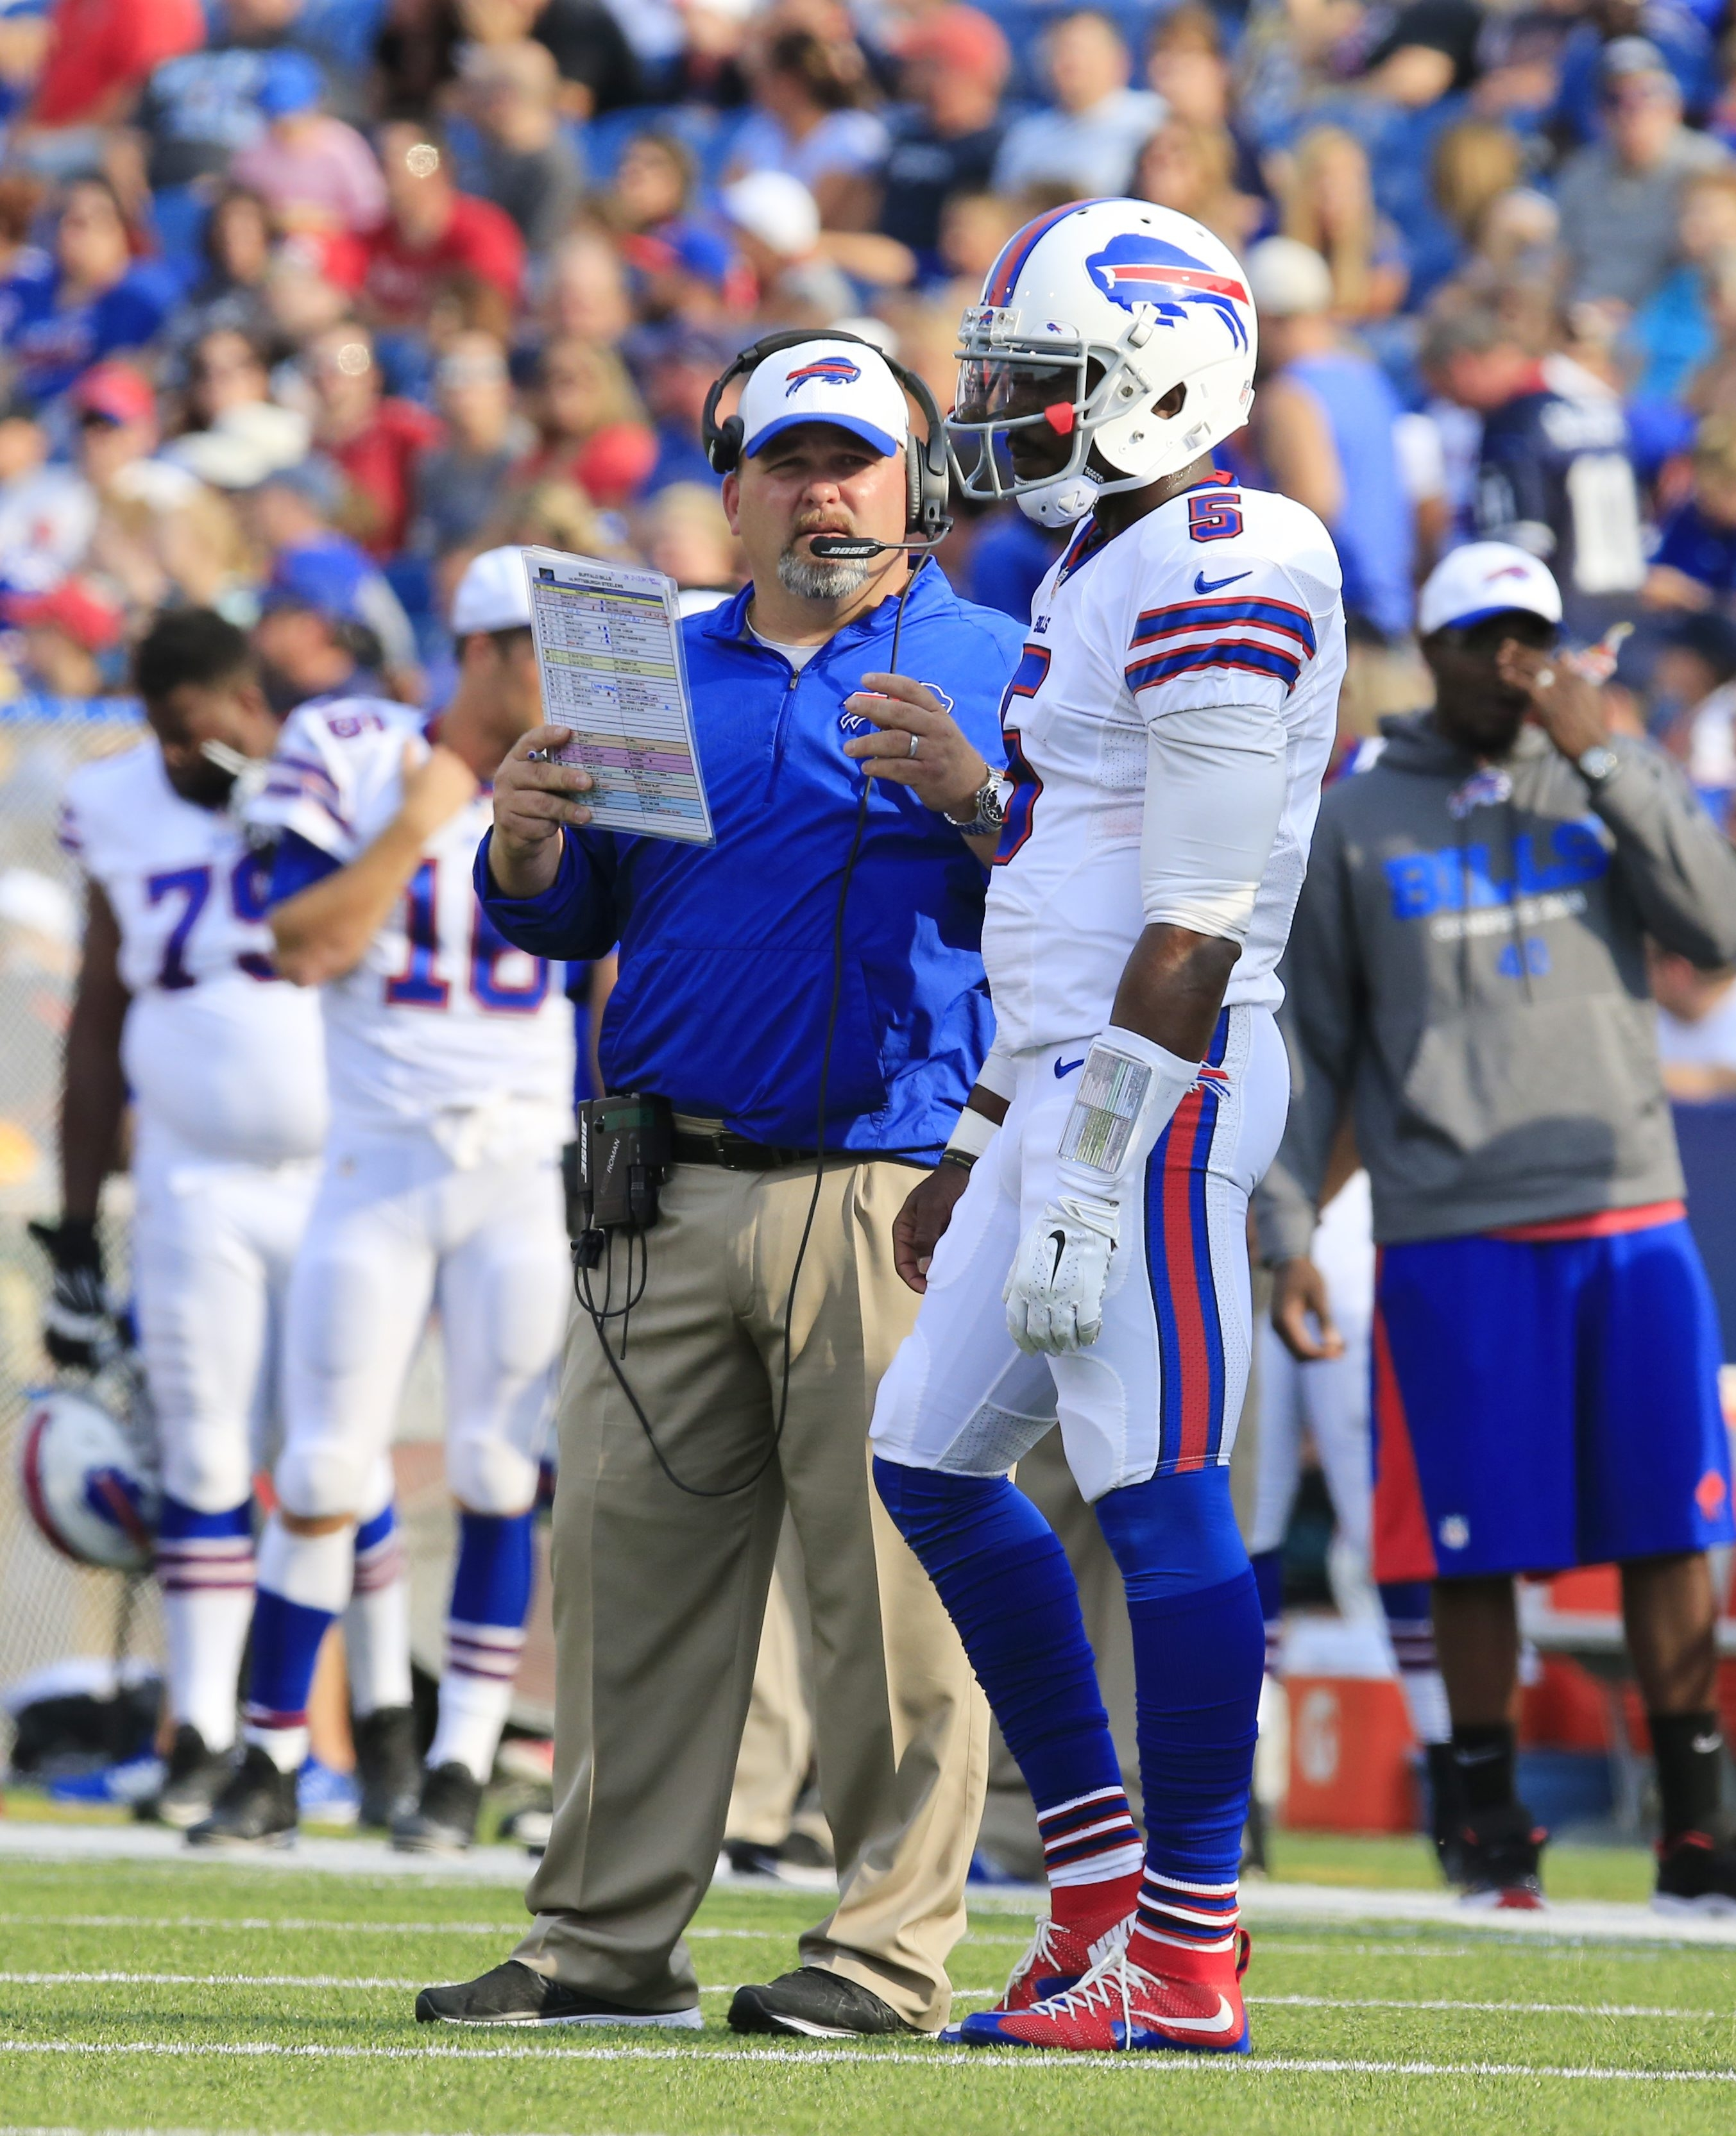 The offensive system that Greg Roman employed in San Francisco provides clues to how he will utilize Tyrod Taylor and his running ability for the Bills.